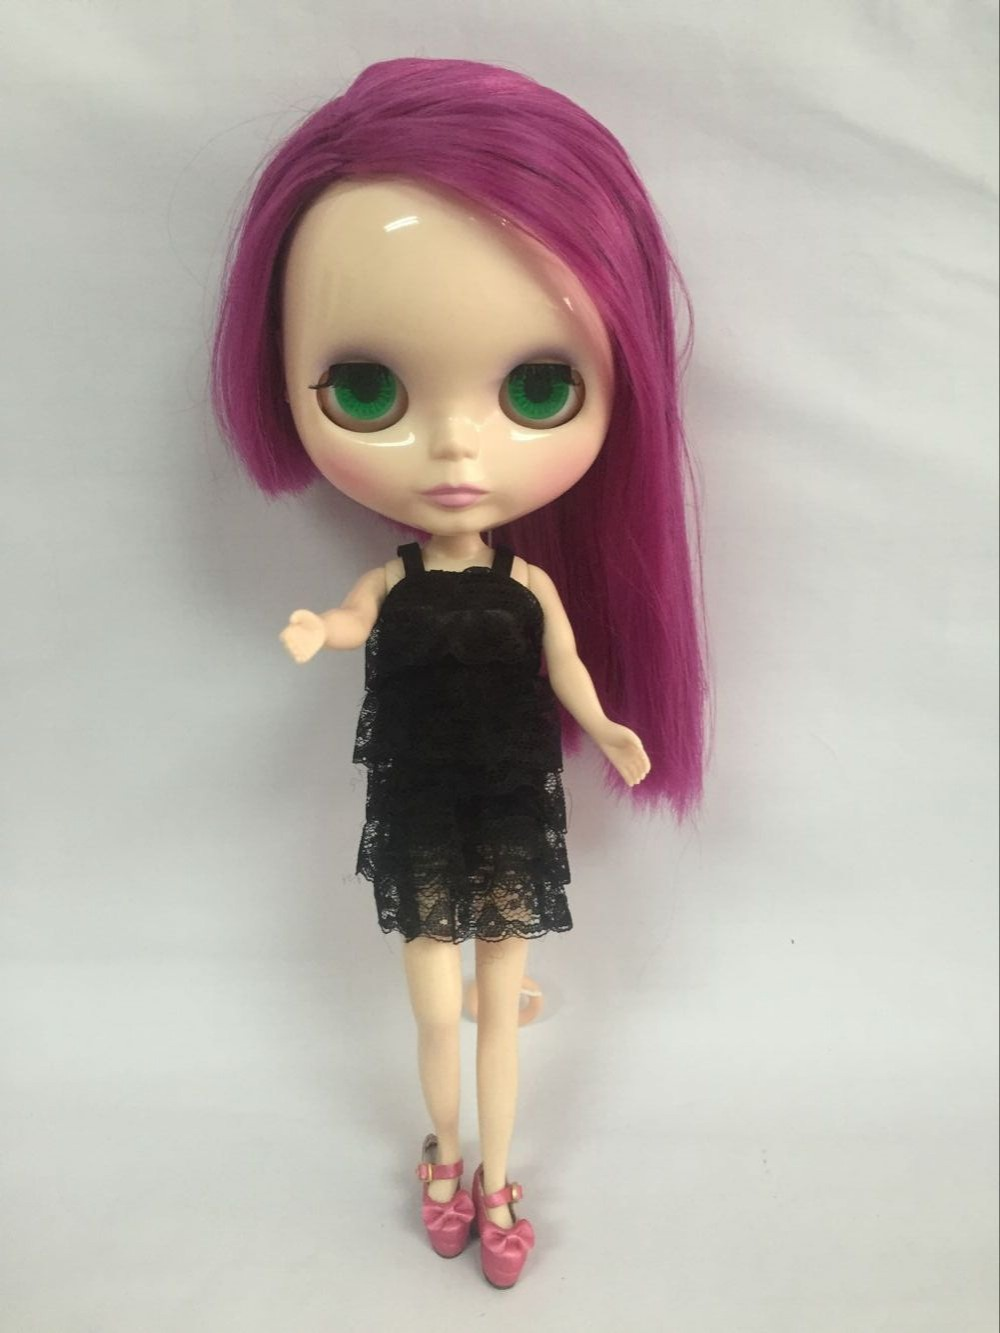 Free Shipping Cost Nude Blyth Doll,Purple Hai Factory Doll ,Suitable For Diy Change -2854